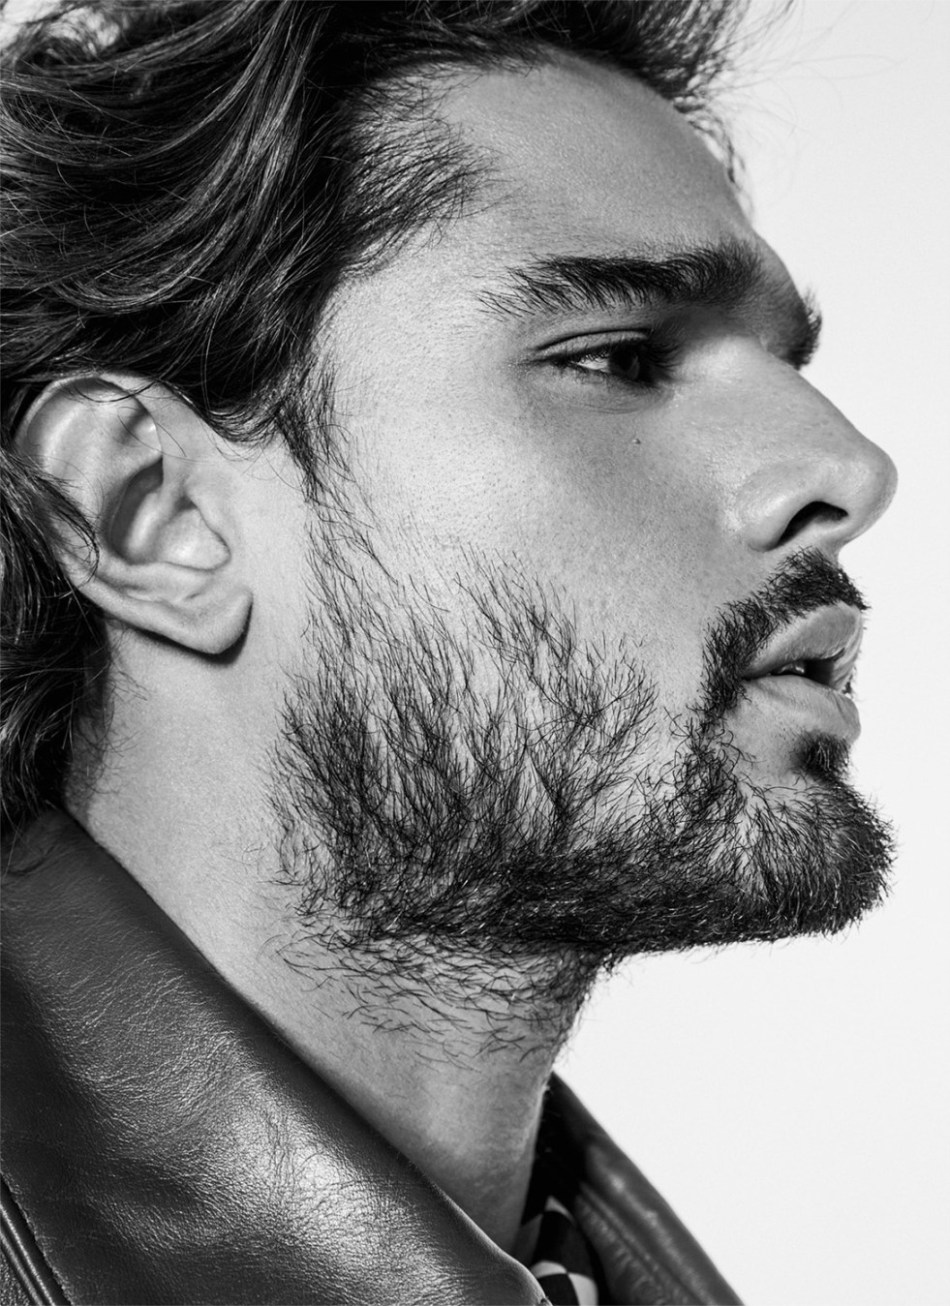 marlon-teixeira-for-issue-man-13-summer-201714